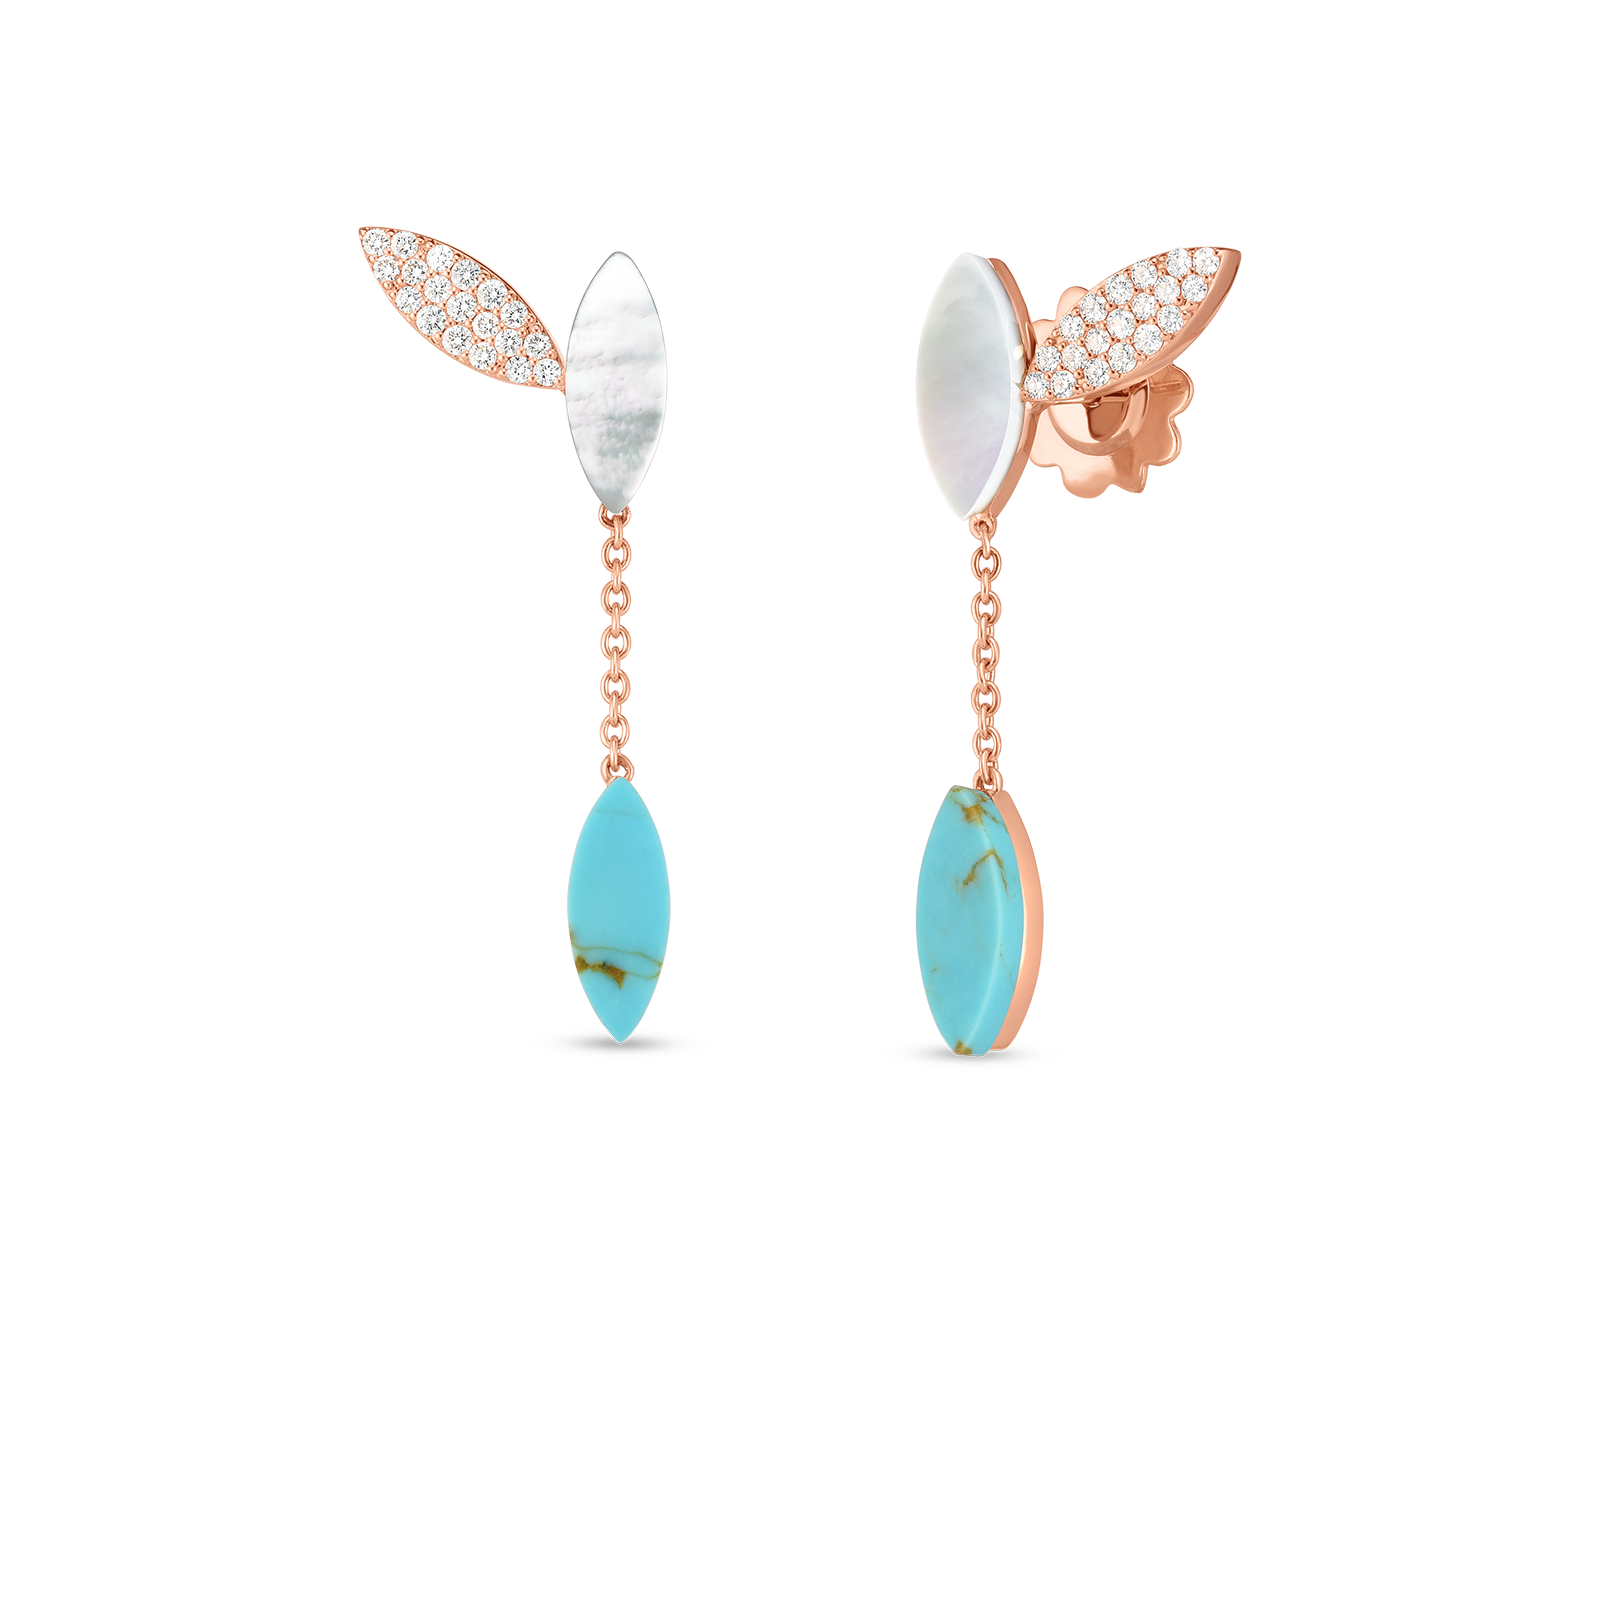 18kt Gold Petal Earrings With Diamonds, Turquoise And Mother Of Pearl